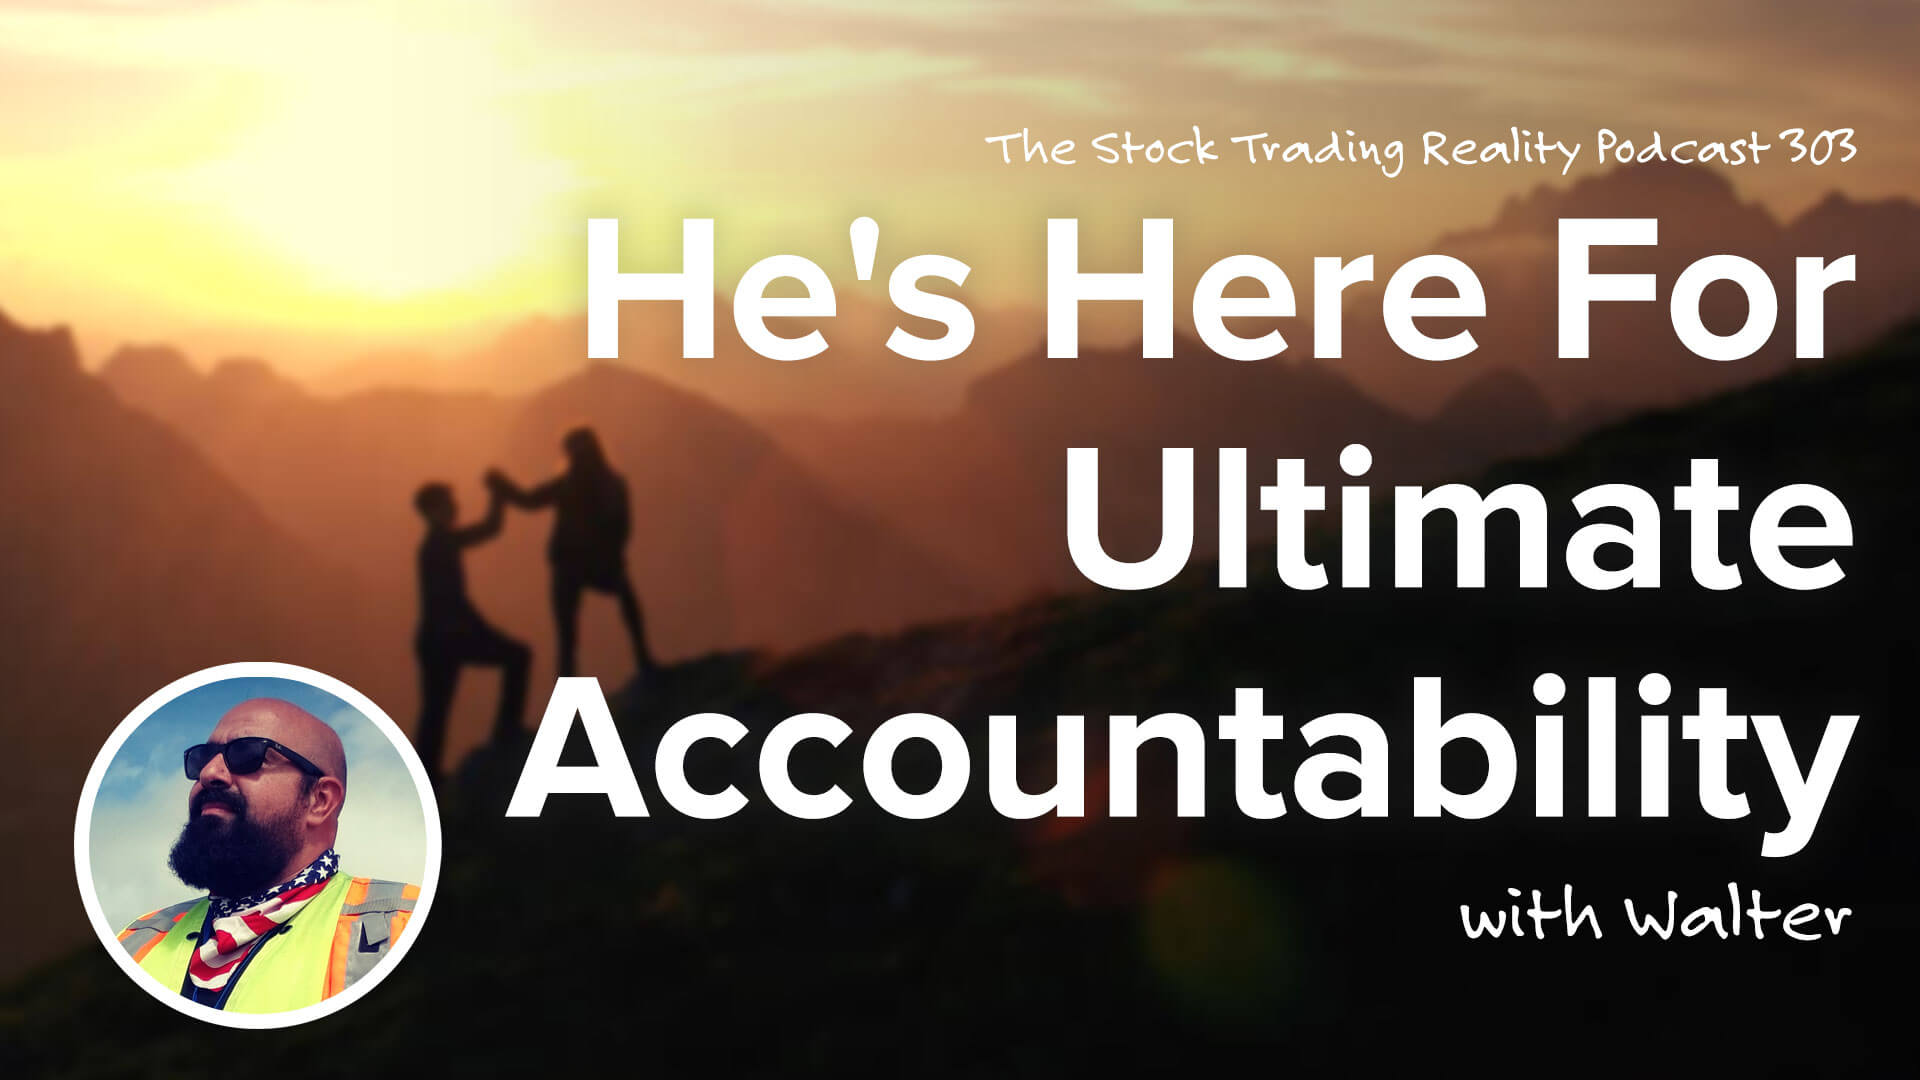 He's Here For Ultimate Accountability...